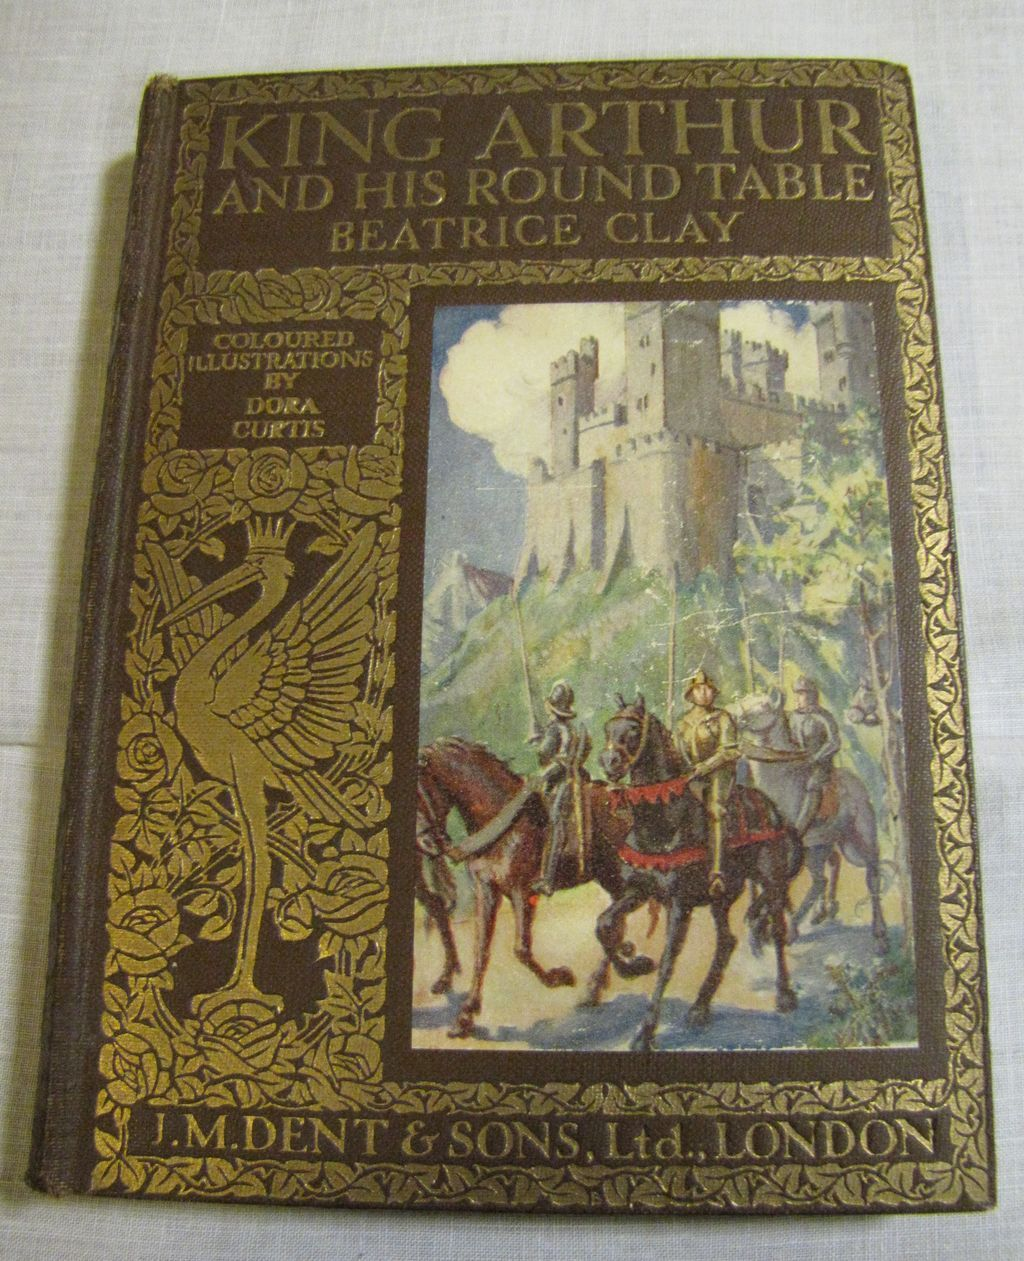 1923 King Arthur And His Round Table Beatrice Clay Ills Dora Curtis